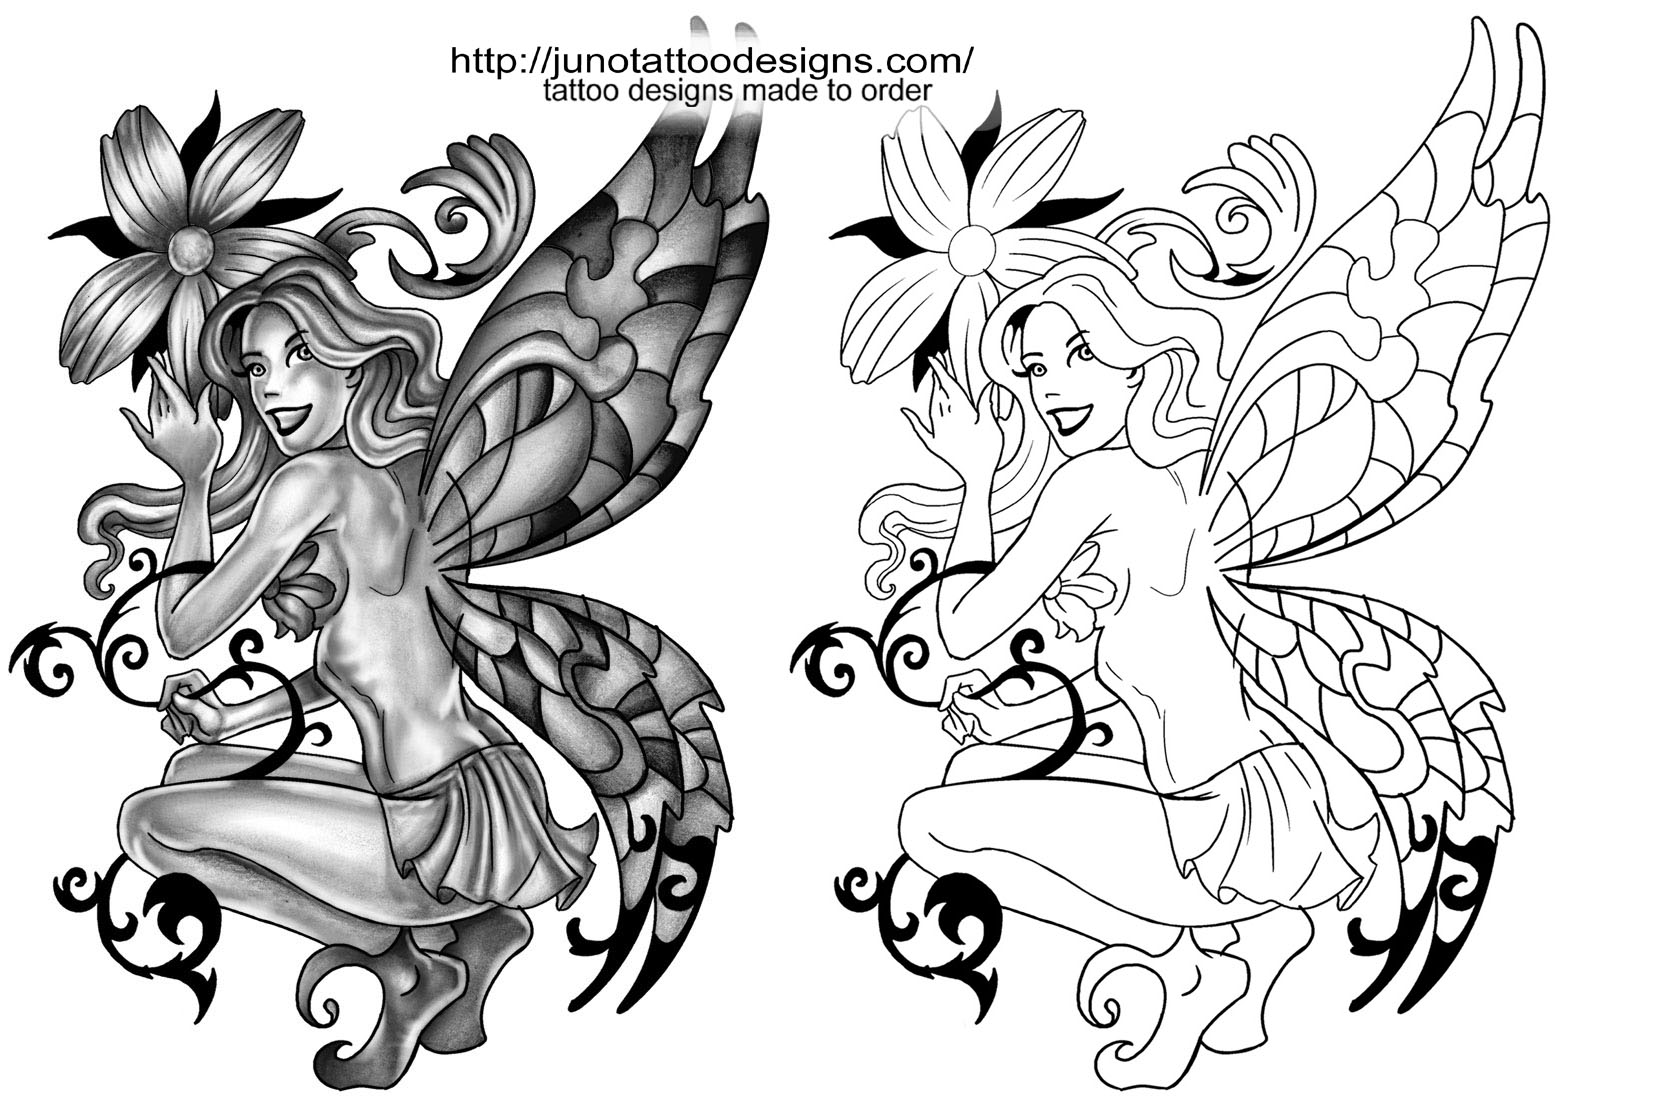 Fairies tattoos designs - Fairy Tattoos By Juno Fairy_tatto_design_with_flower_free